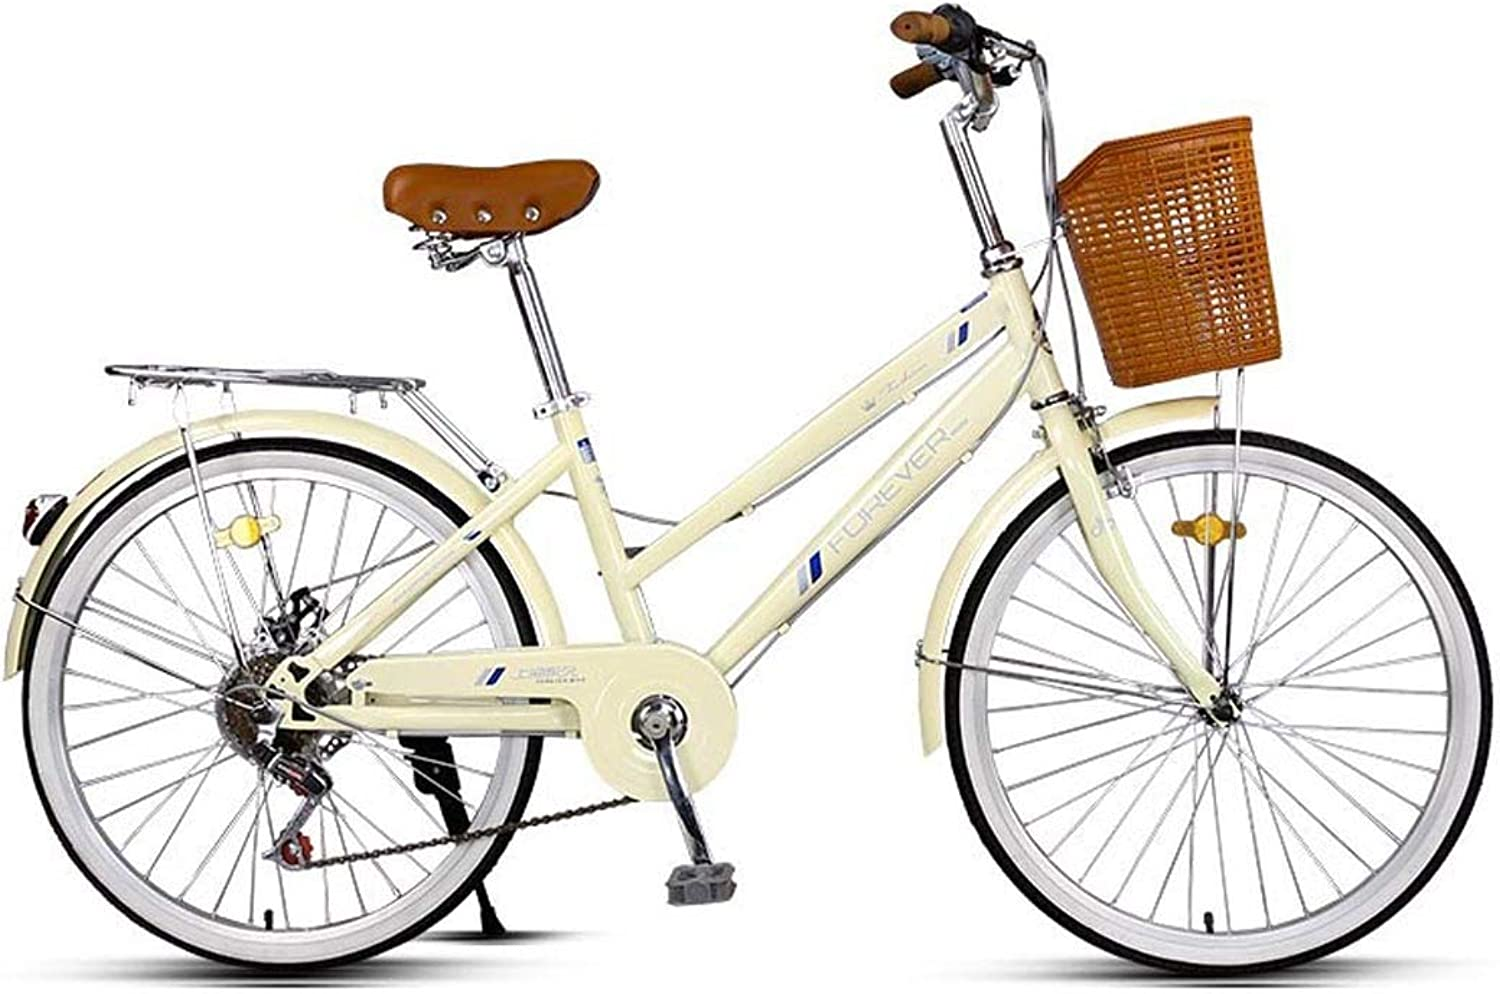 Bicycle, Women's 24 Inch 6Speed Bicycle, Student Adult Leisure Bicycle, City Commuter